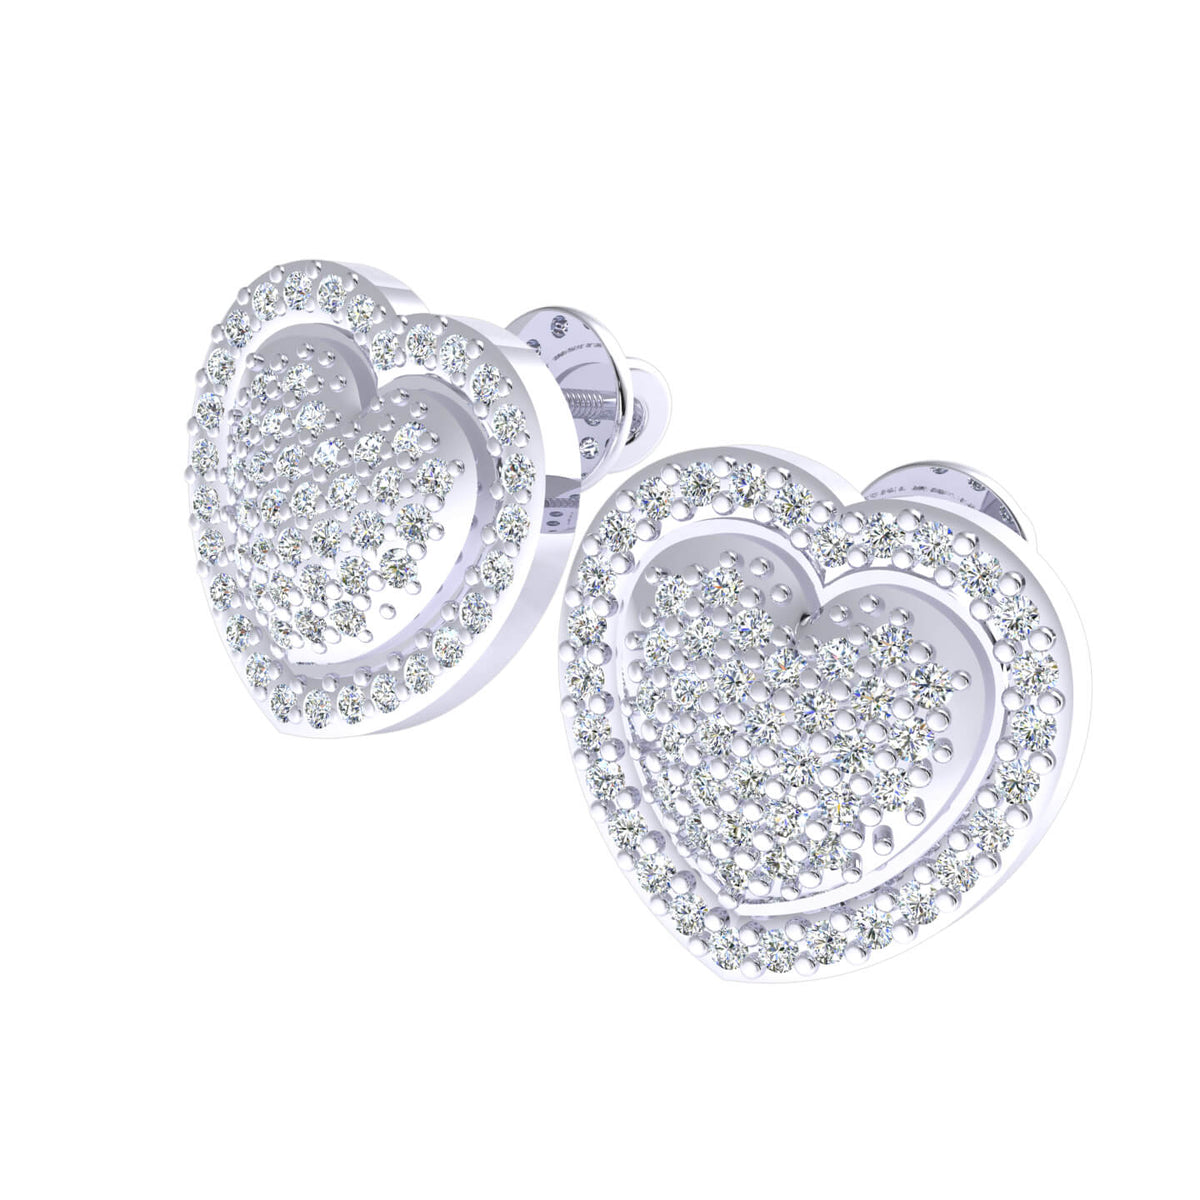 0.50 Ct Round GH I1-I2 Diamond Cluster Stud Unisex Heart Earrings 925 Sterling Silver